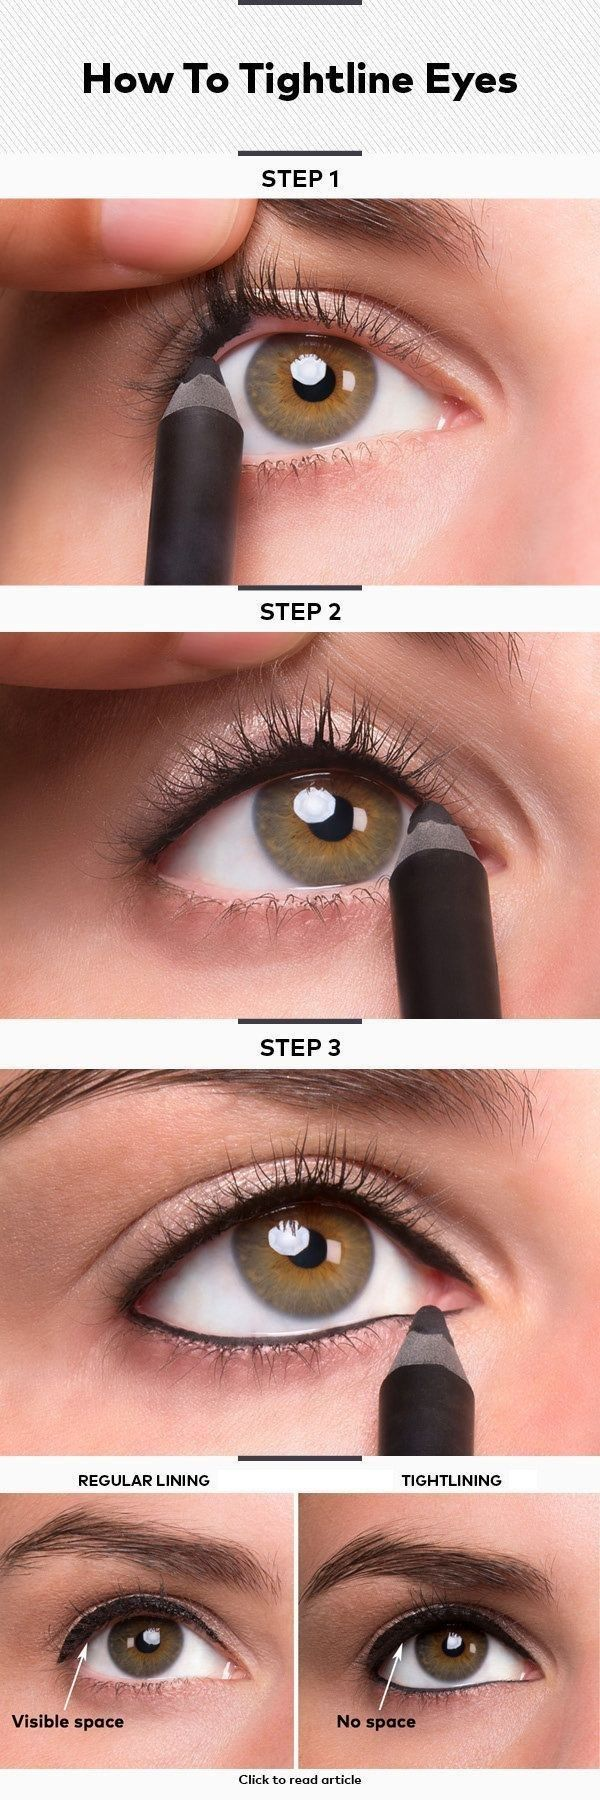 Tightline your eyes to make them look *striking* AF. | 15 Extremely Helpful Charts For People Who Suck At Eyeliner